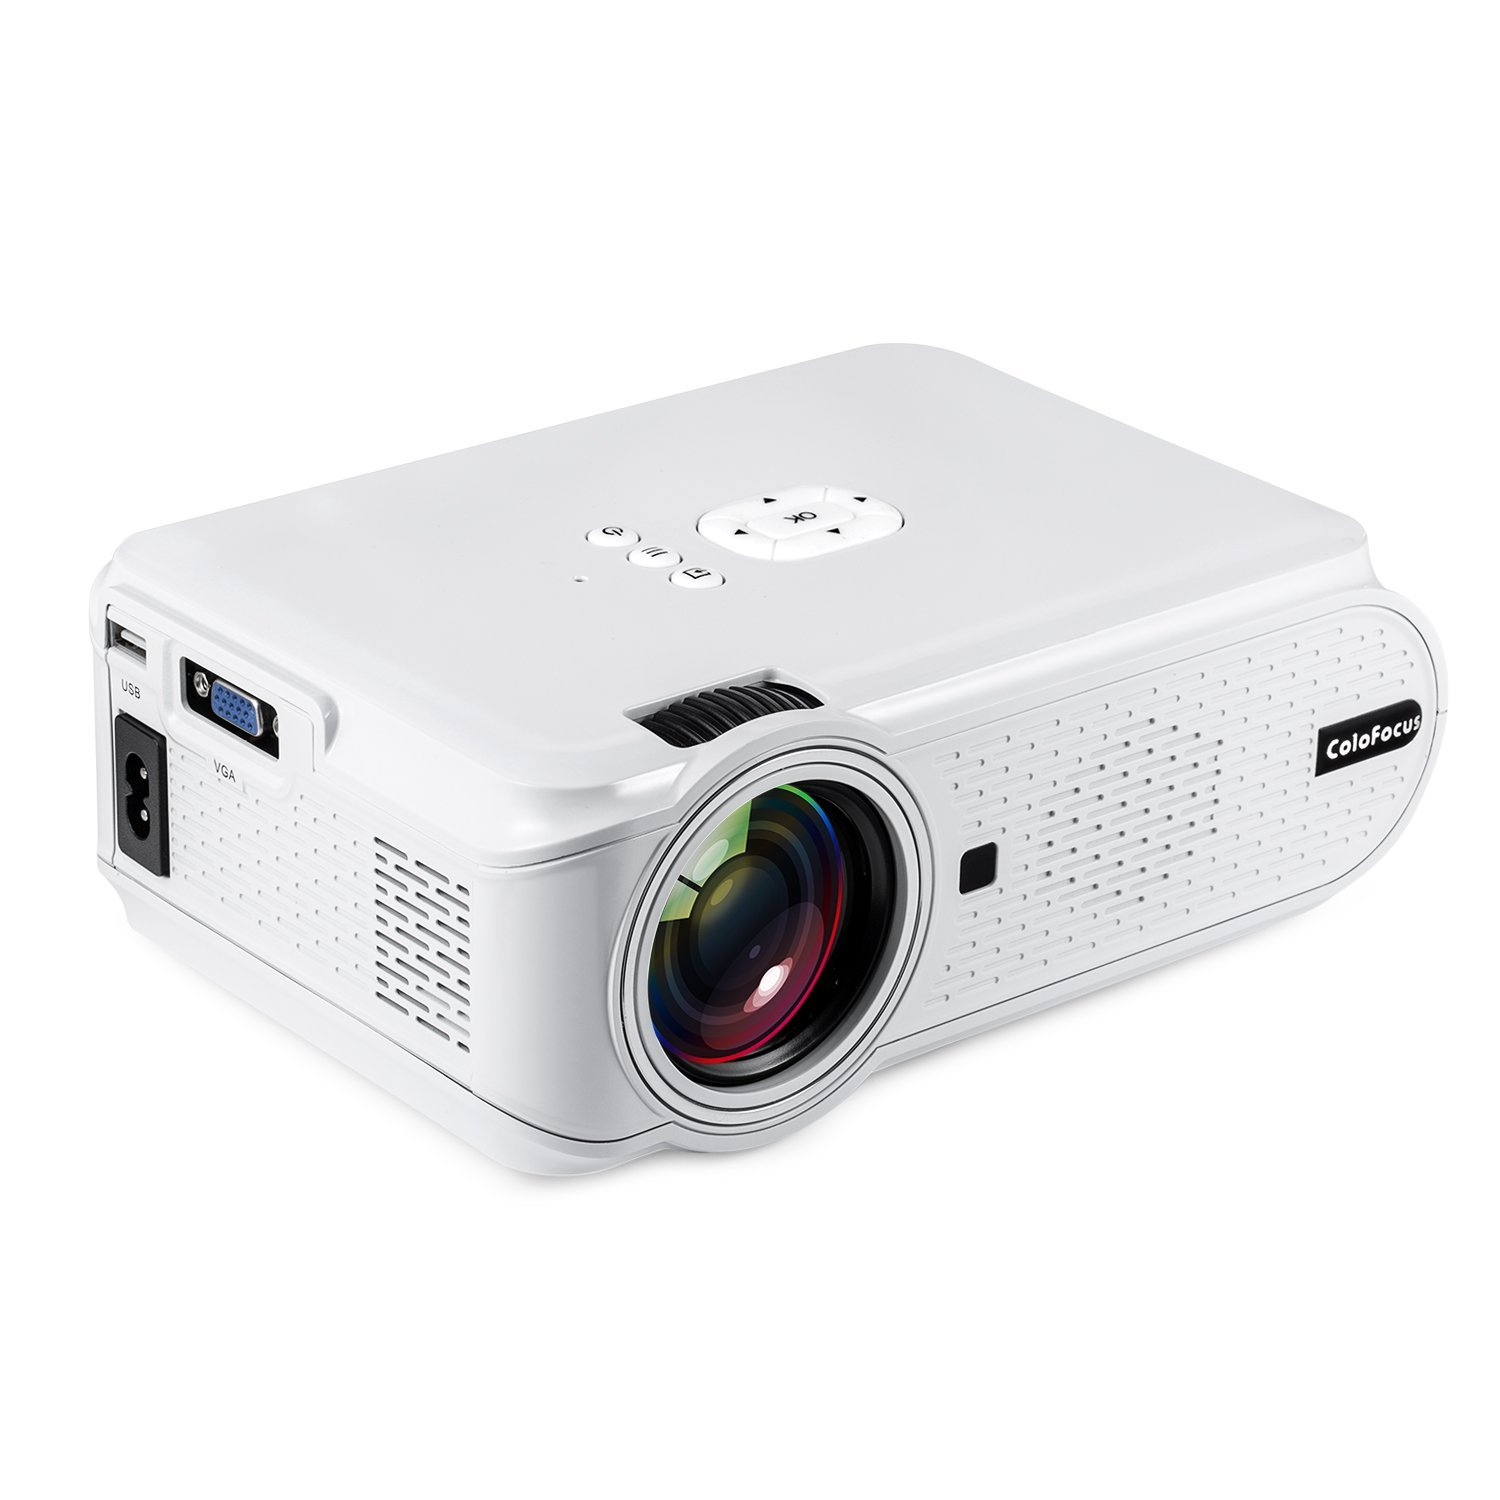 Hd projector home video mini projector with 1080p for Miniature projector